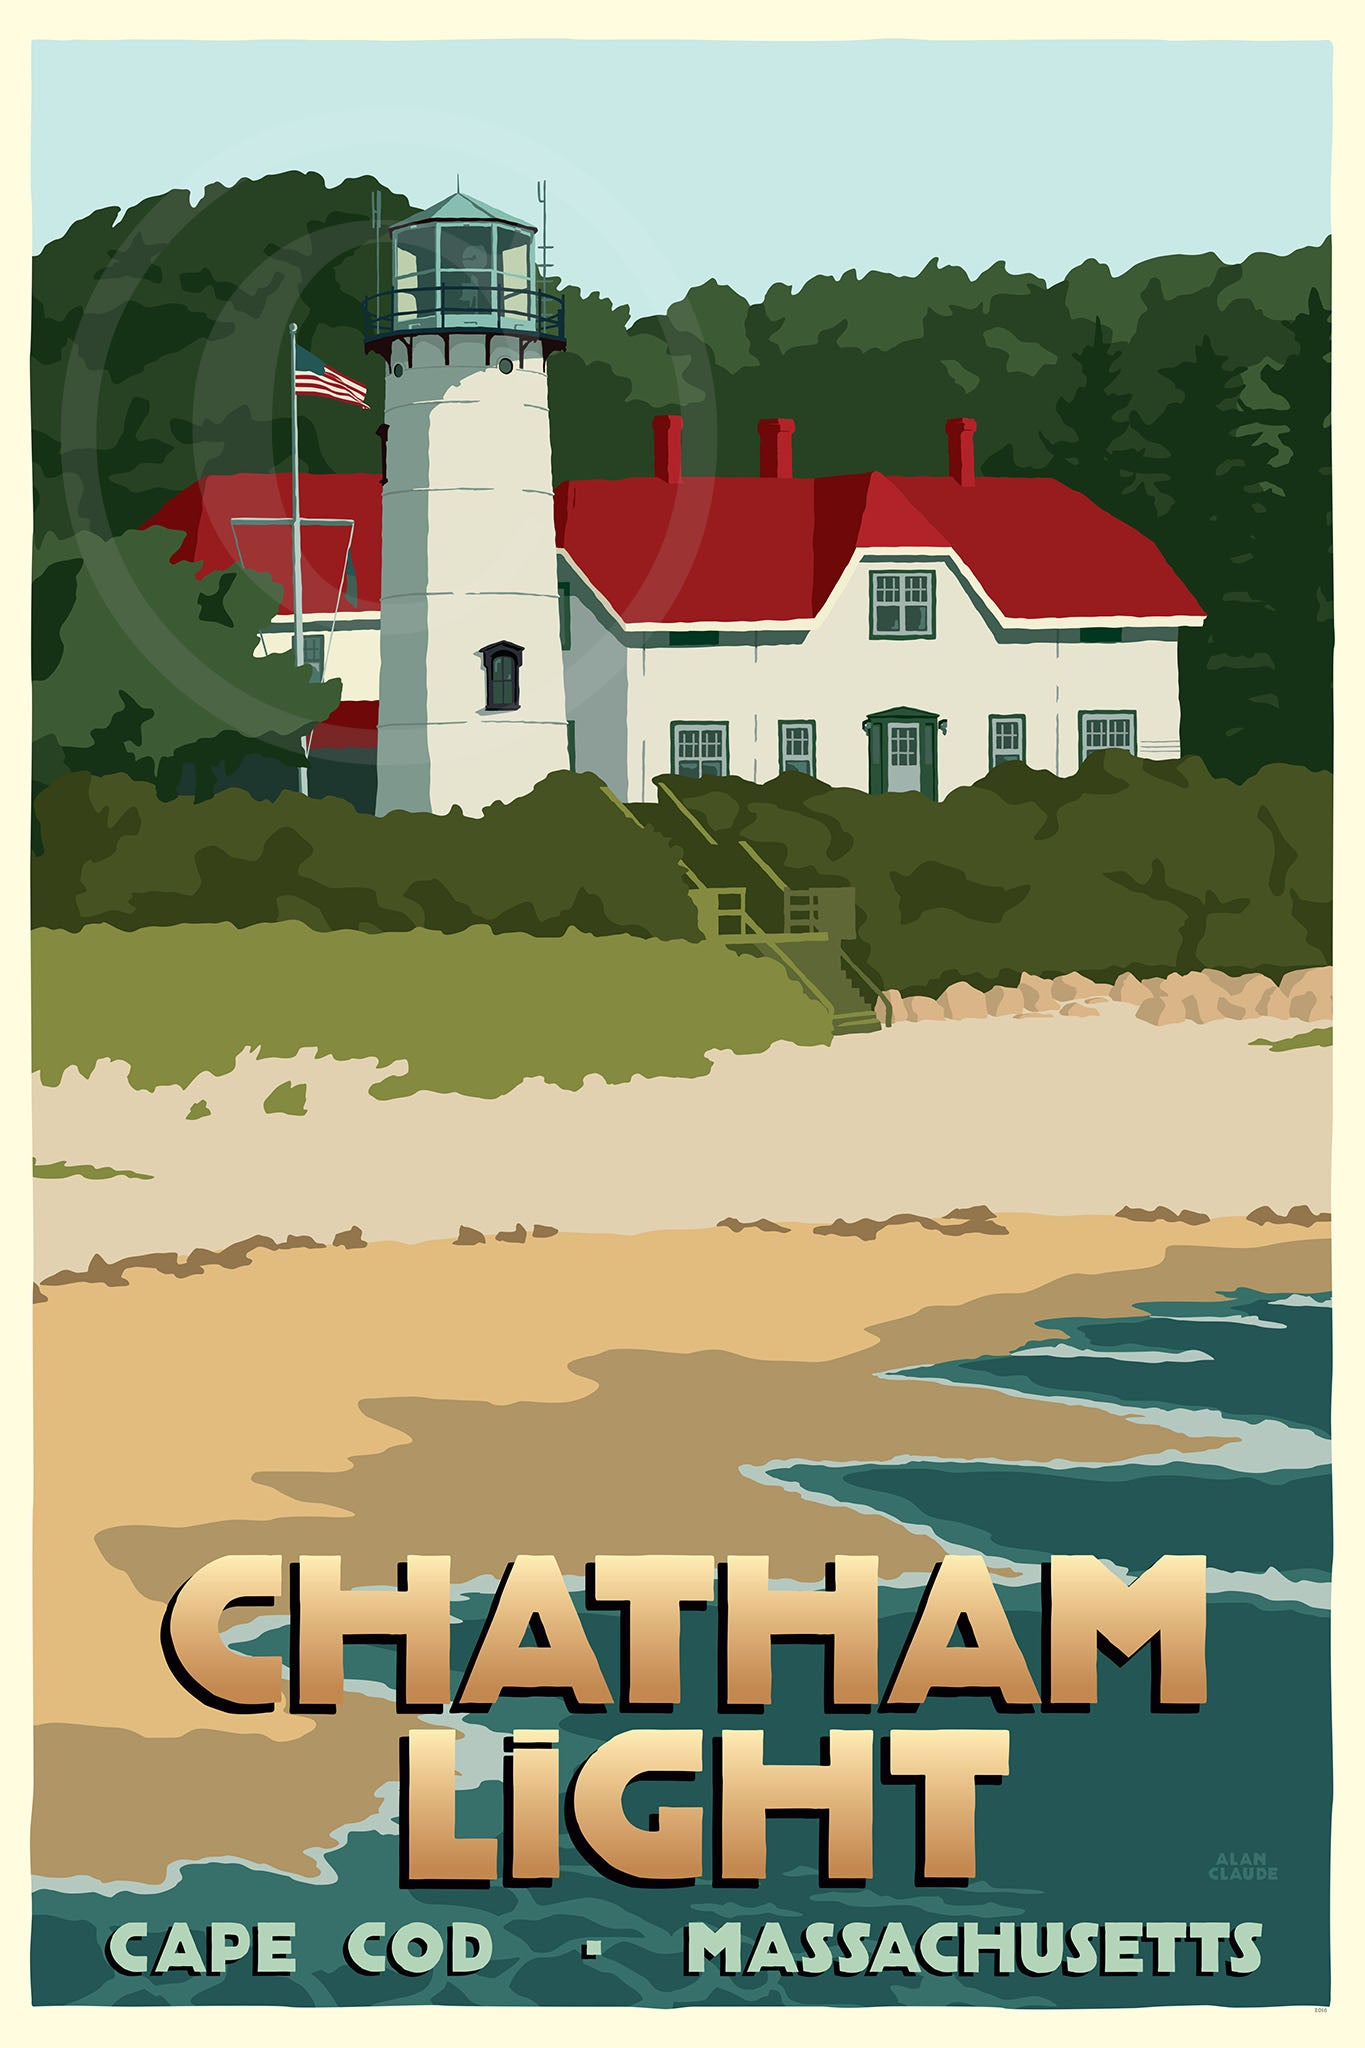 "Chatham Light Art Print 24"" x 36"" Travel Poster - Massachusetts"